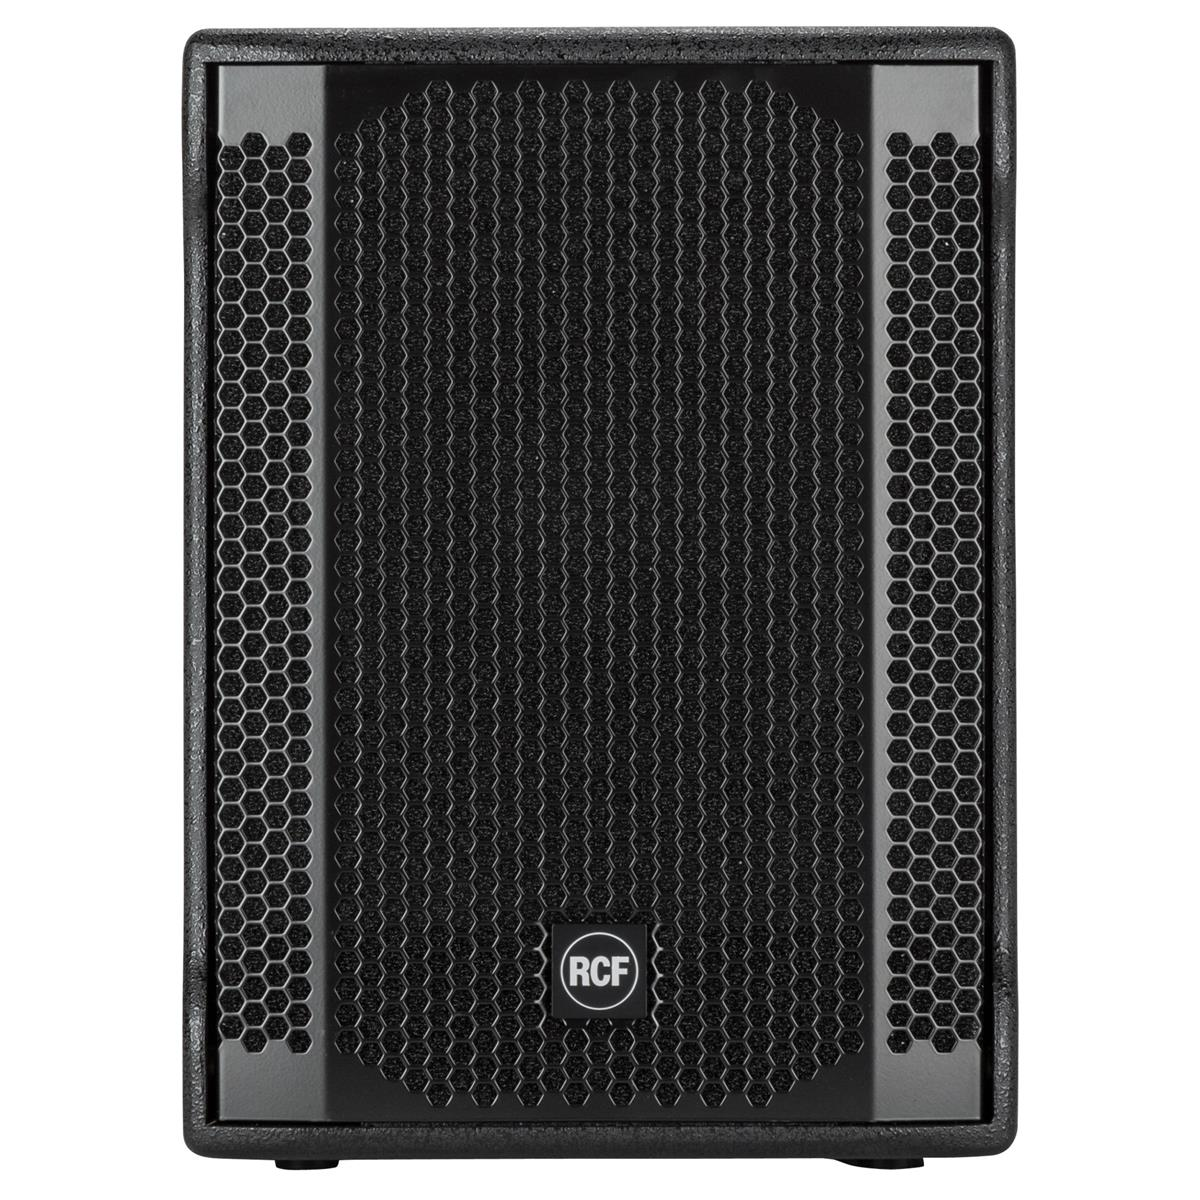 RCF 12in Bass Reflex Active Subwoofer, 700Wrms, 1400Wpeak